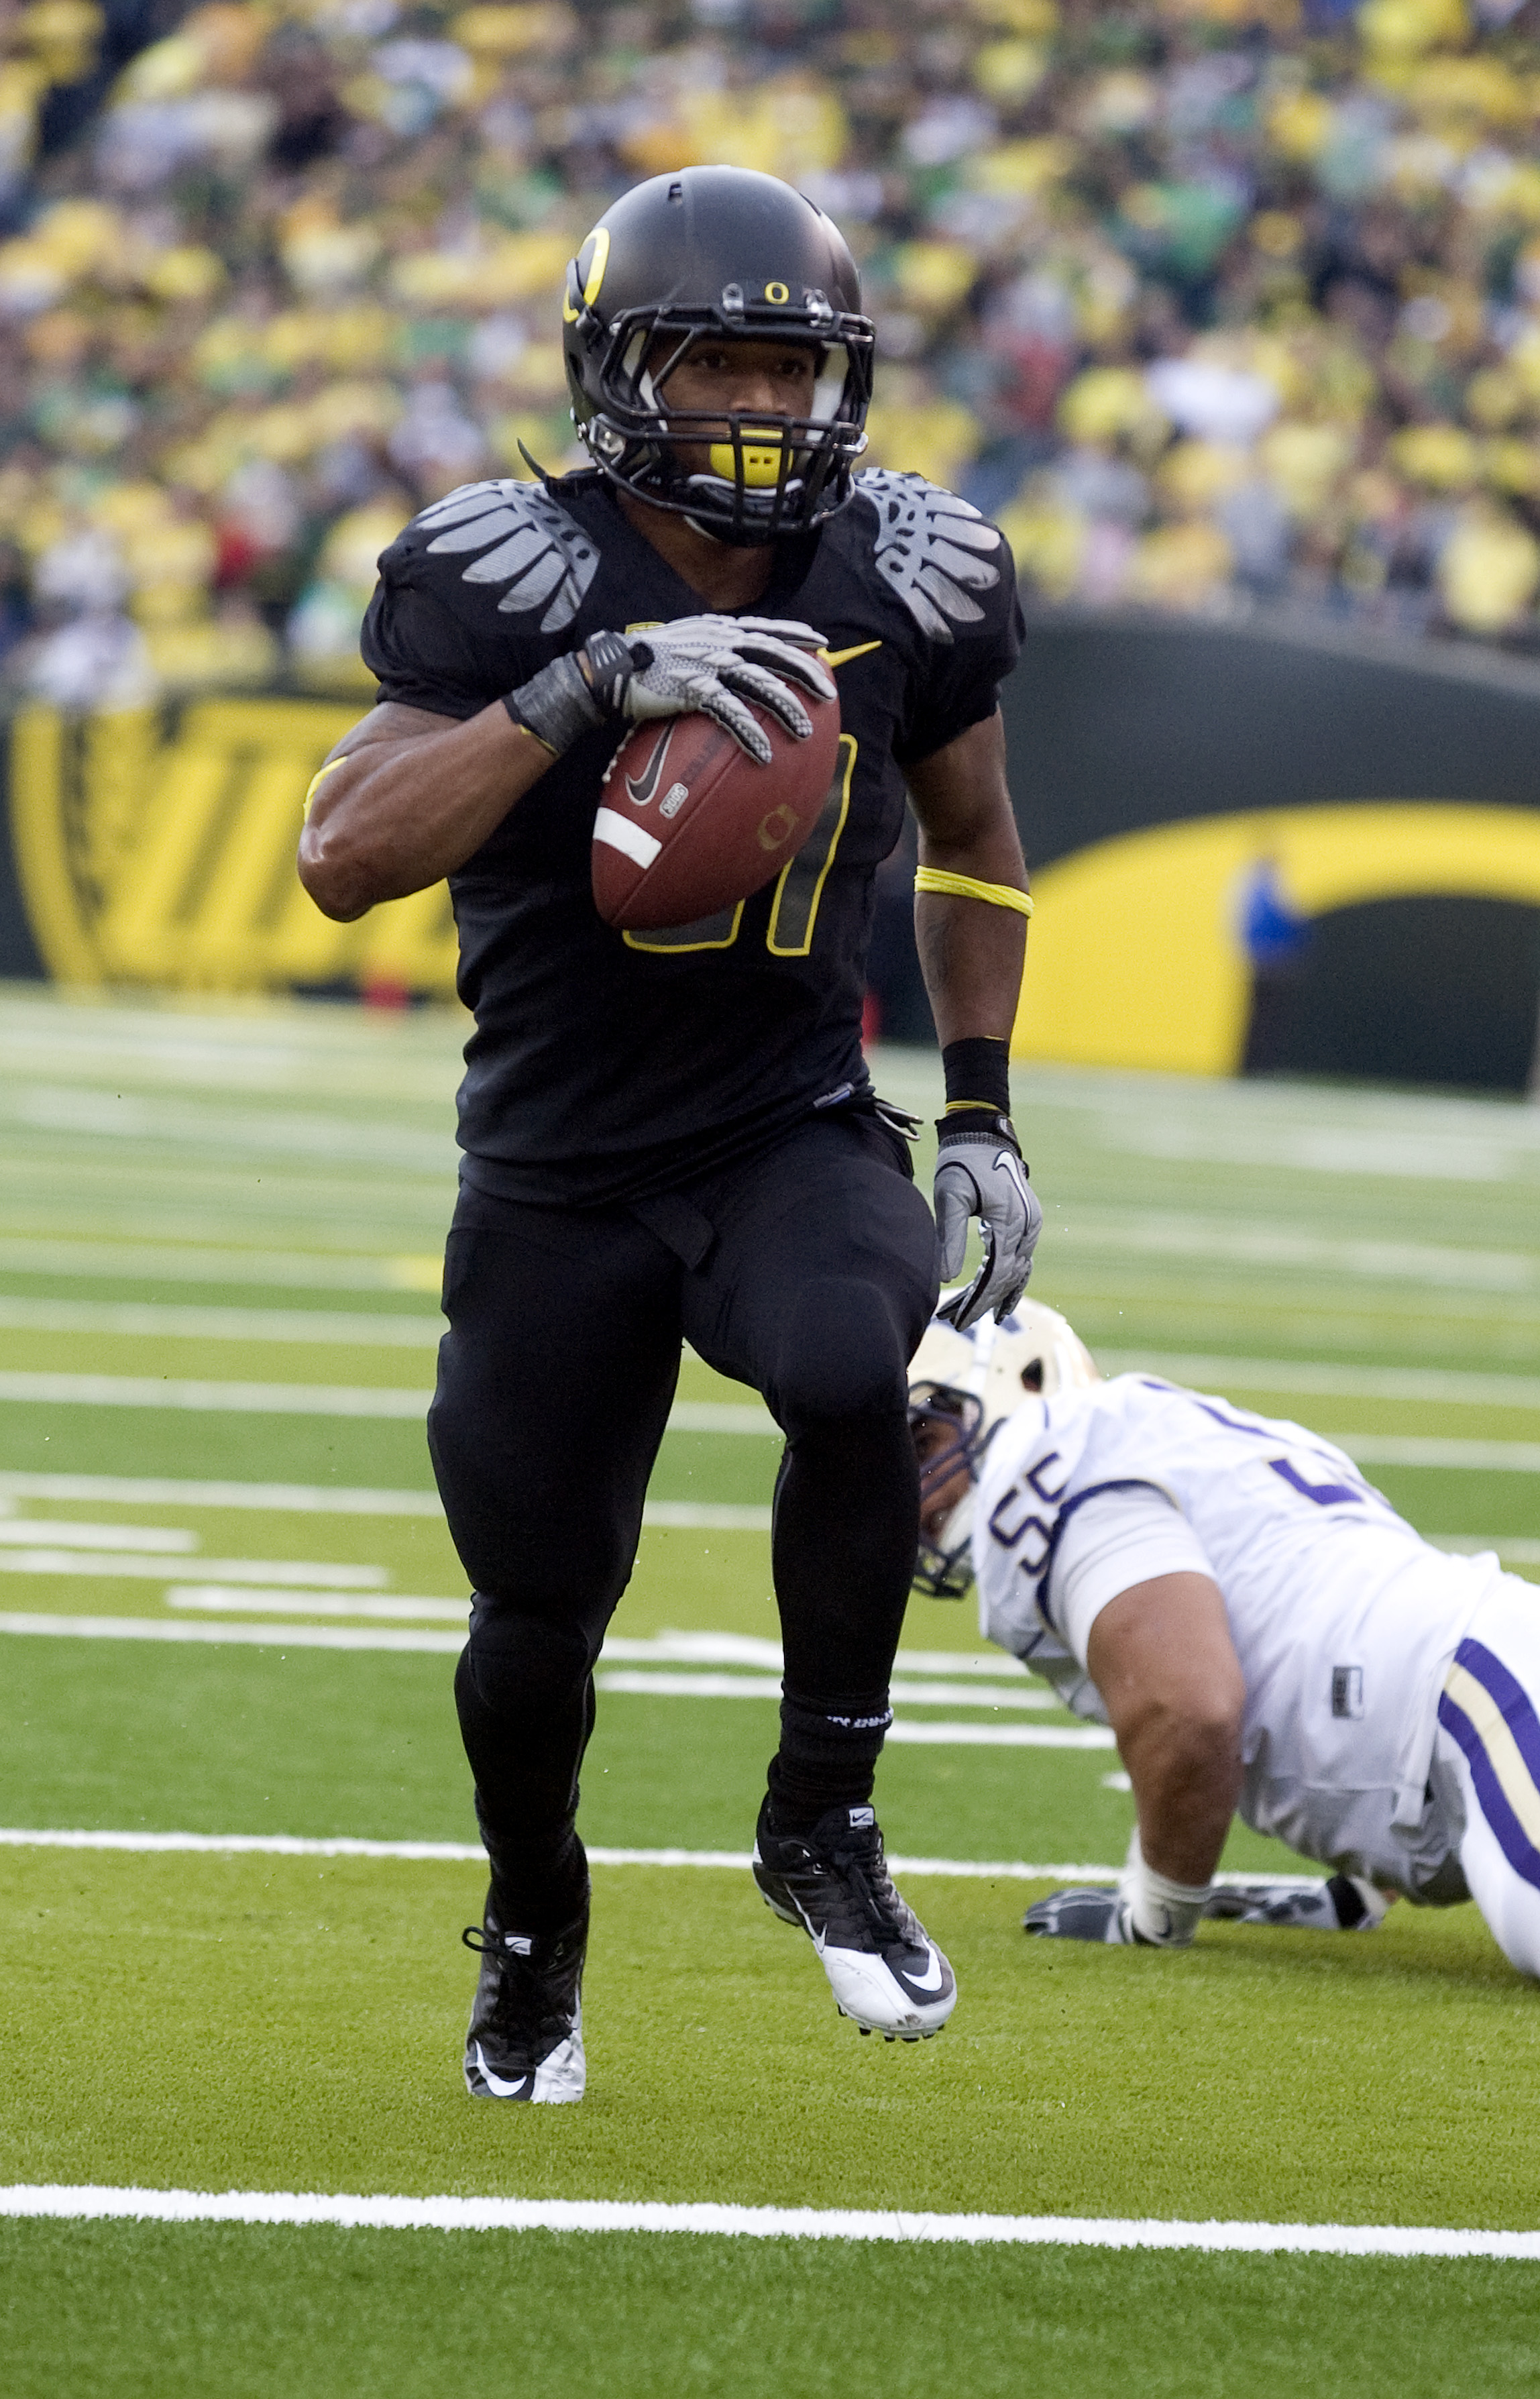 EUGENE, OR - NOVEMBER 6: Running back LaMichael James #21 of the Oregon Ducks steps into the end zone past defensive tackle Sione Potoa'e #55 of the Washington Huskies in the fourth quarter of the game at Autzen Stadium on November 6, 2010 in Eugene, Oreg